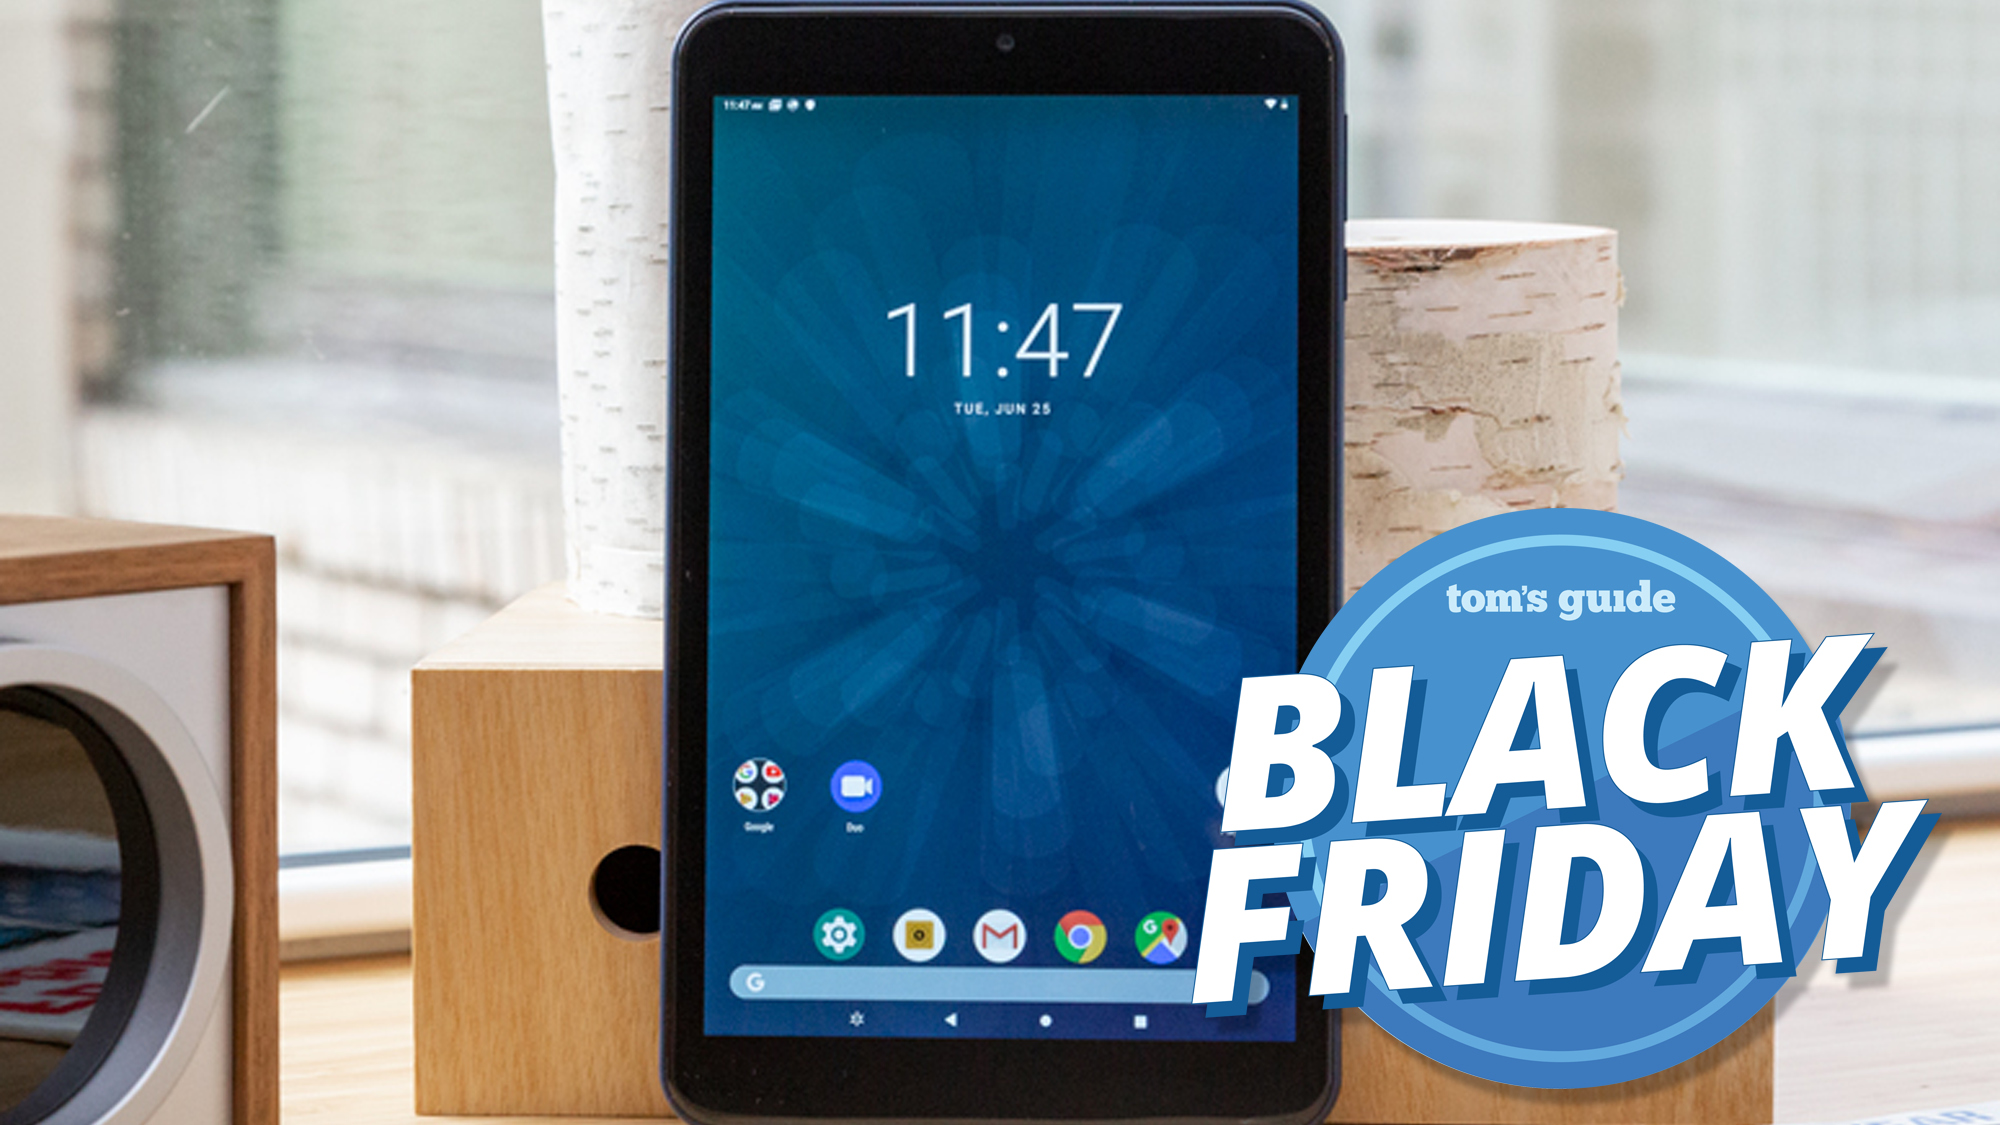 Walmart S Onn Tablet Is Just 60 In Its Black Friday Sale Tom S Guide